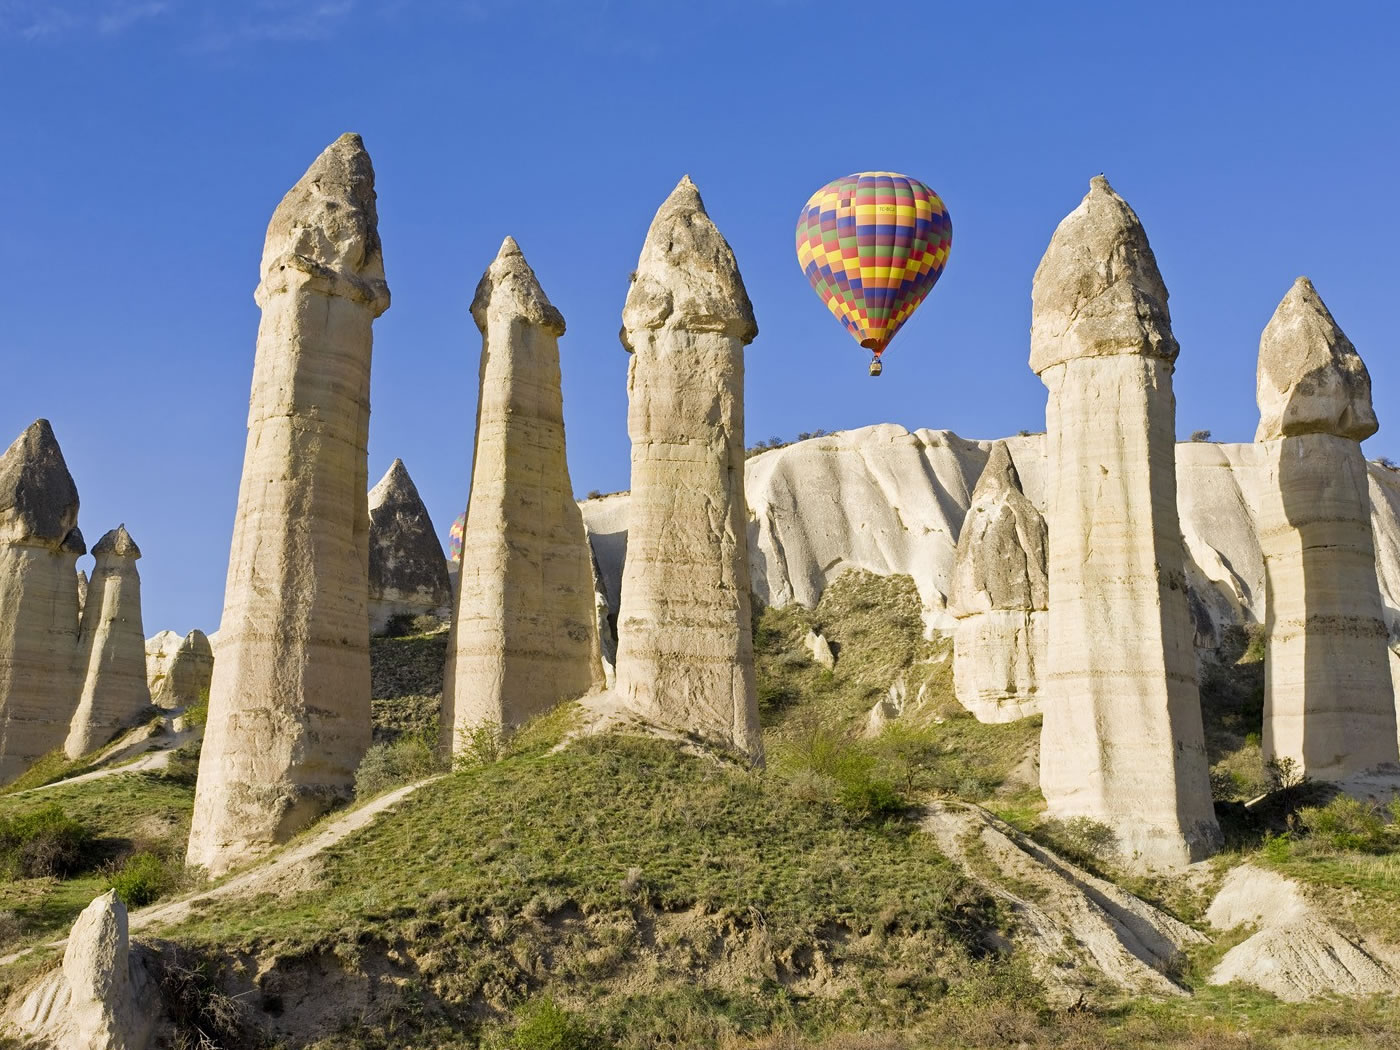 19 Days 18 Nights Istanbul, Cappadocia, Nemrut, Sanlıurfa, Konya, Antalya, Pamukkale, Ephesus, Gallipoli, Bursa, Kocaeli, Izmit Tour Package